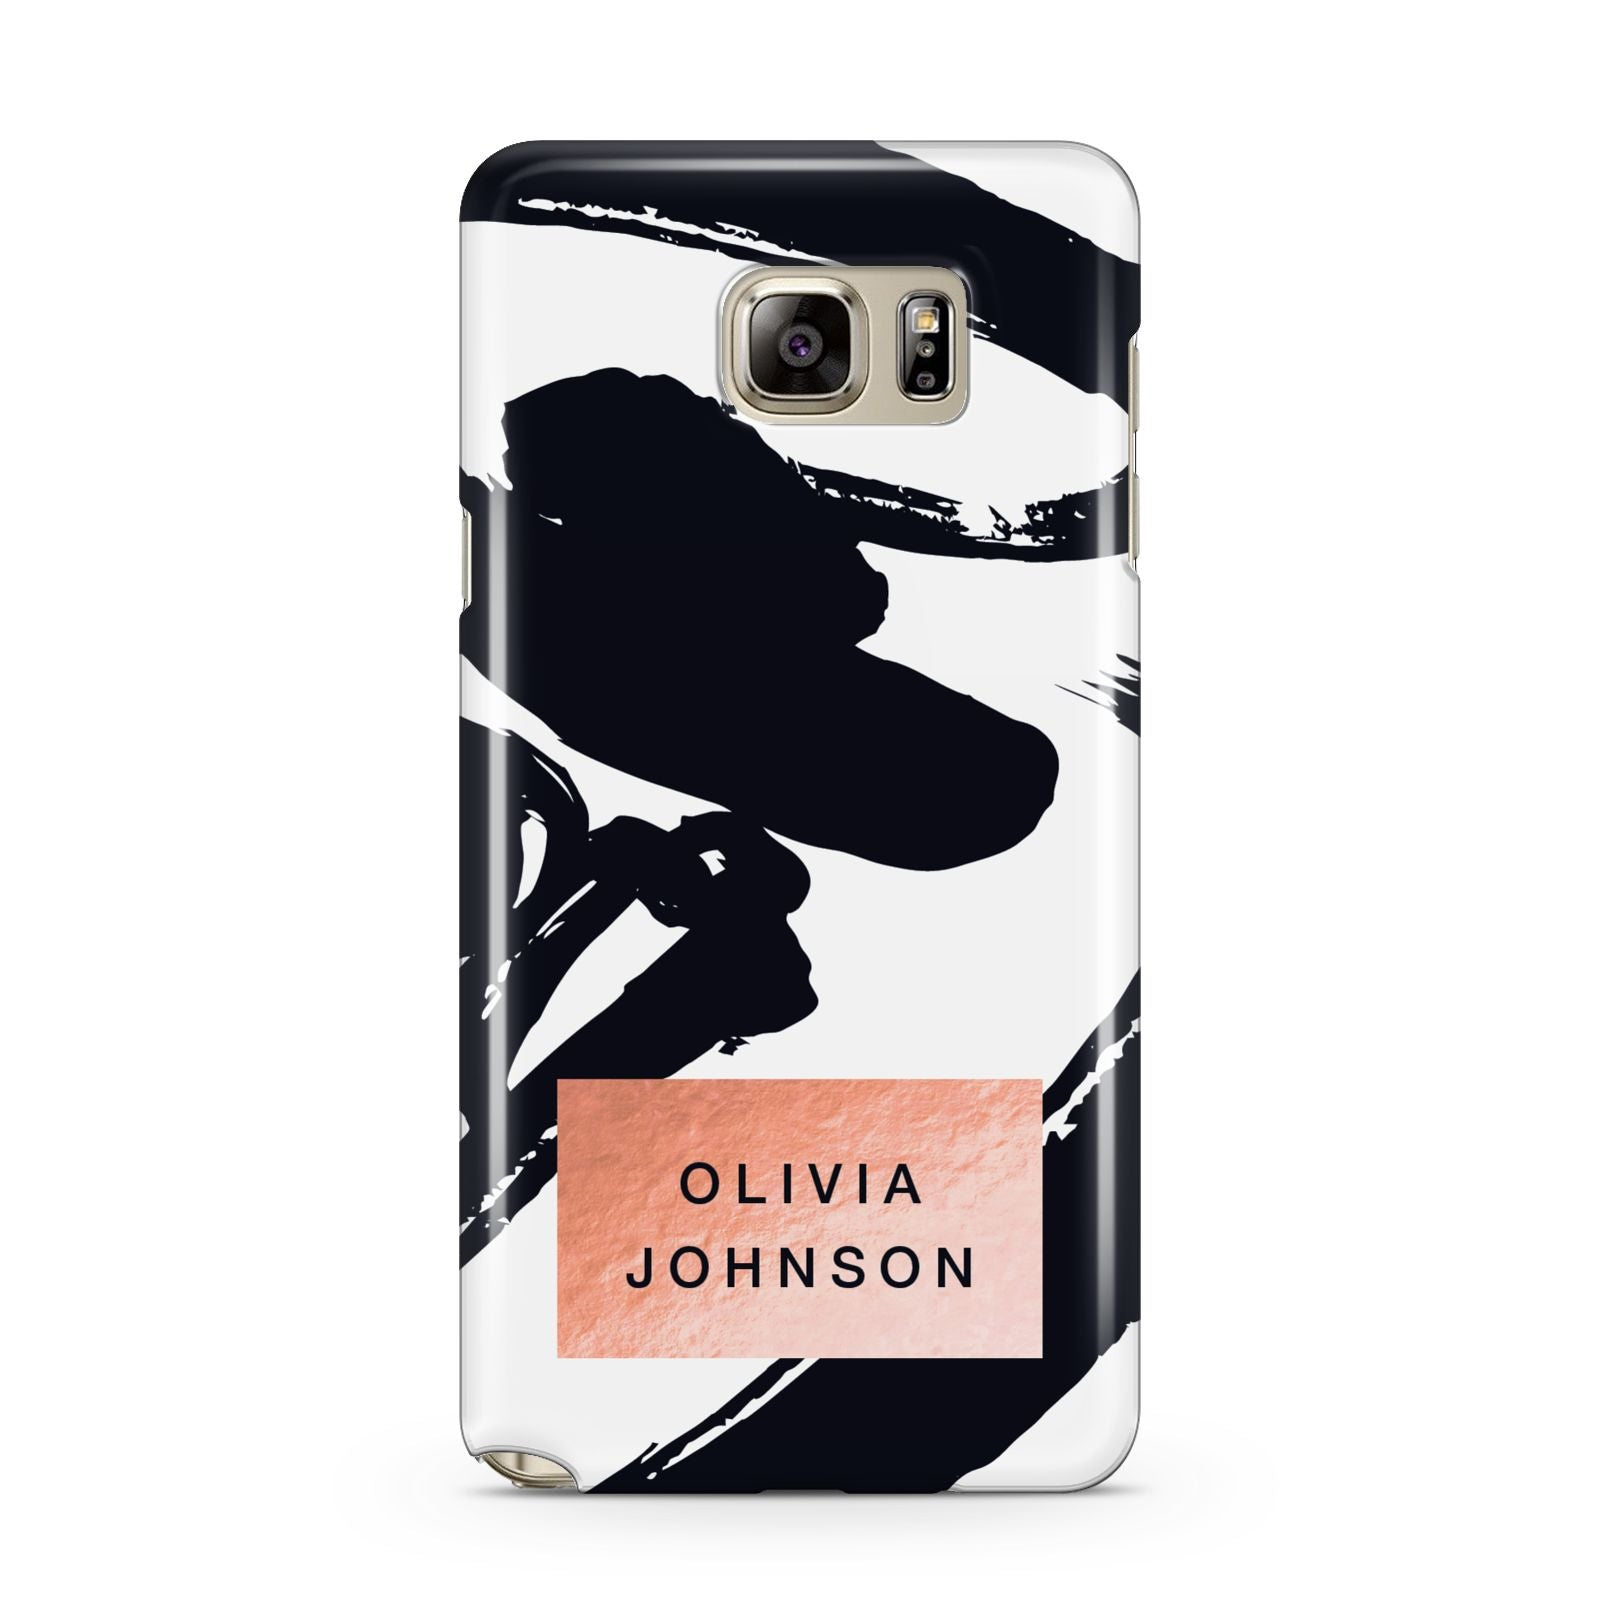 Personalised Black Brushes With Name Samsung Galaxy Note 5 Case